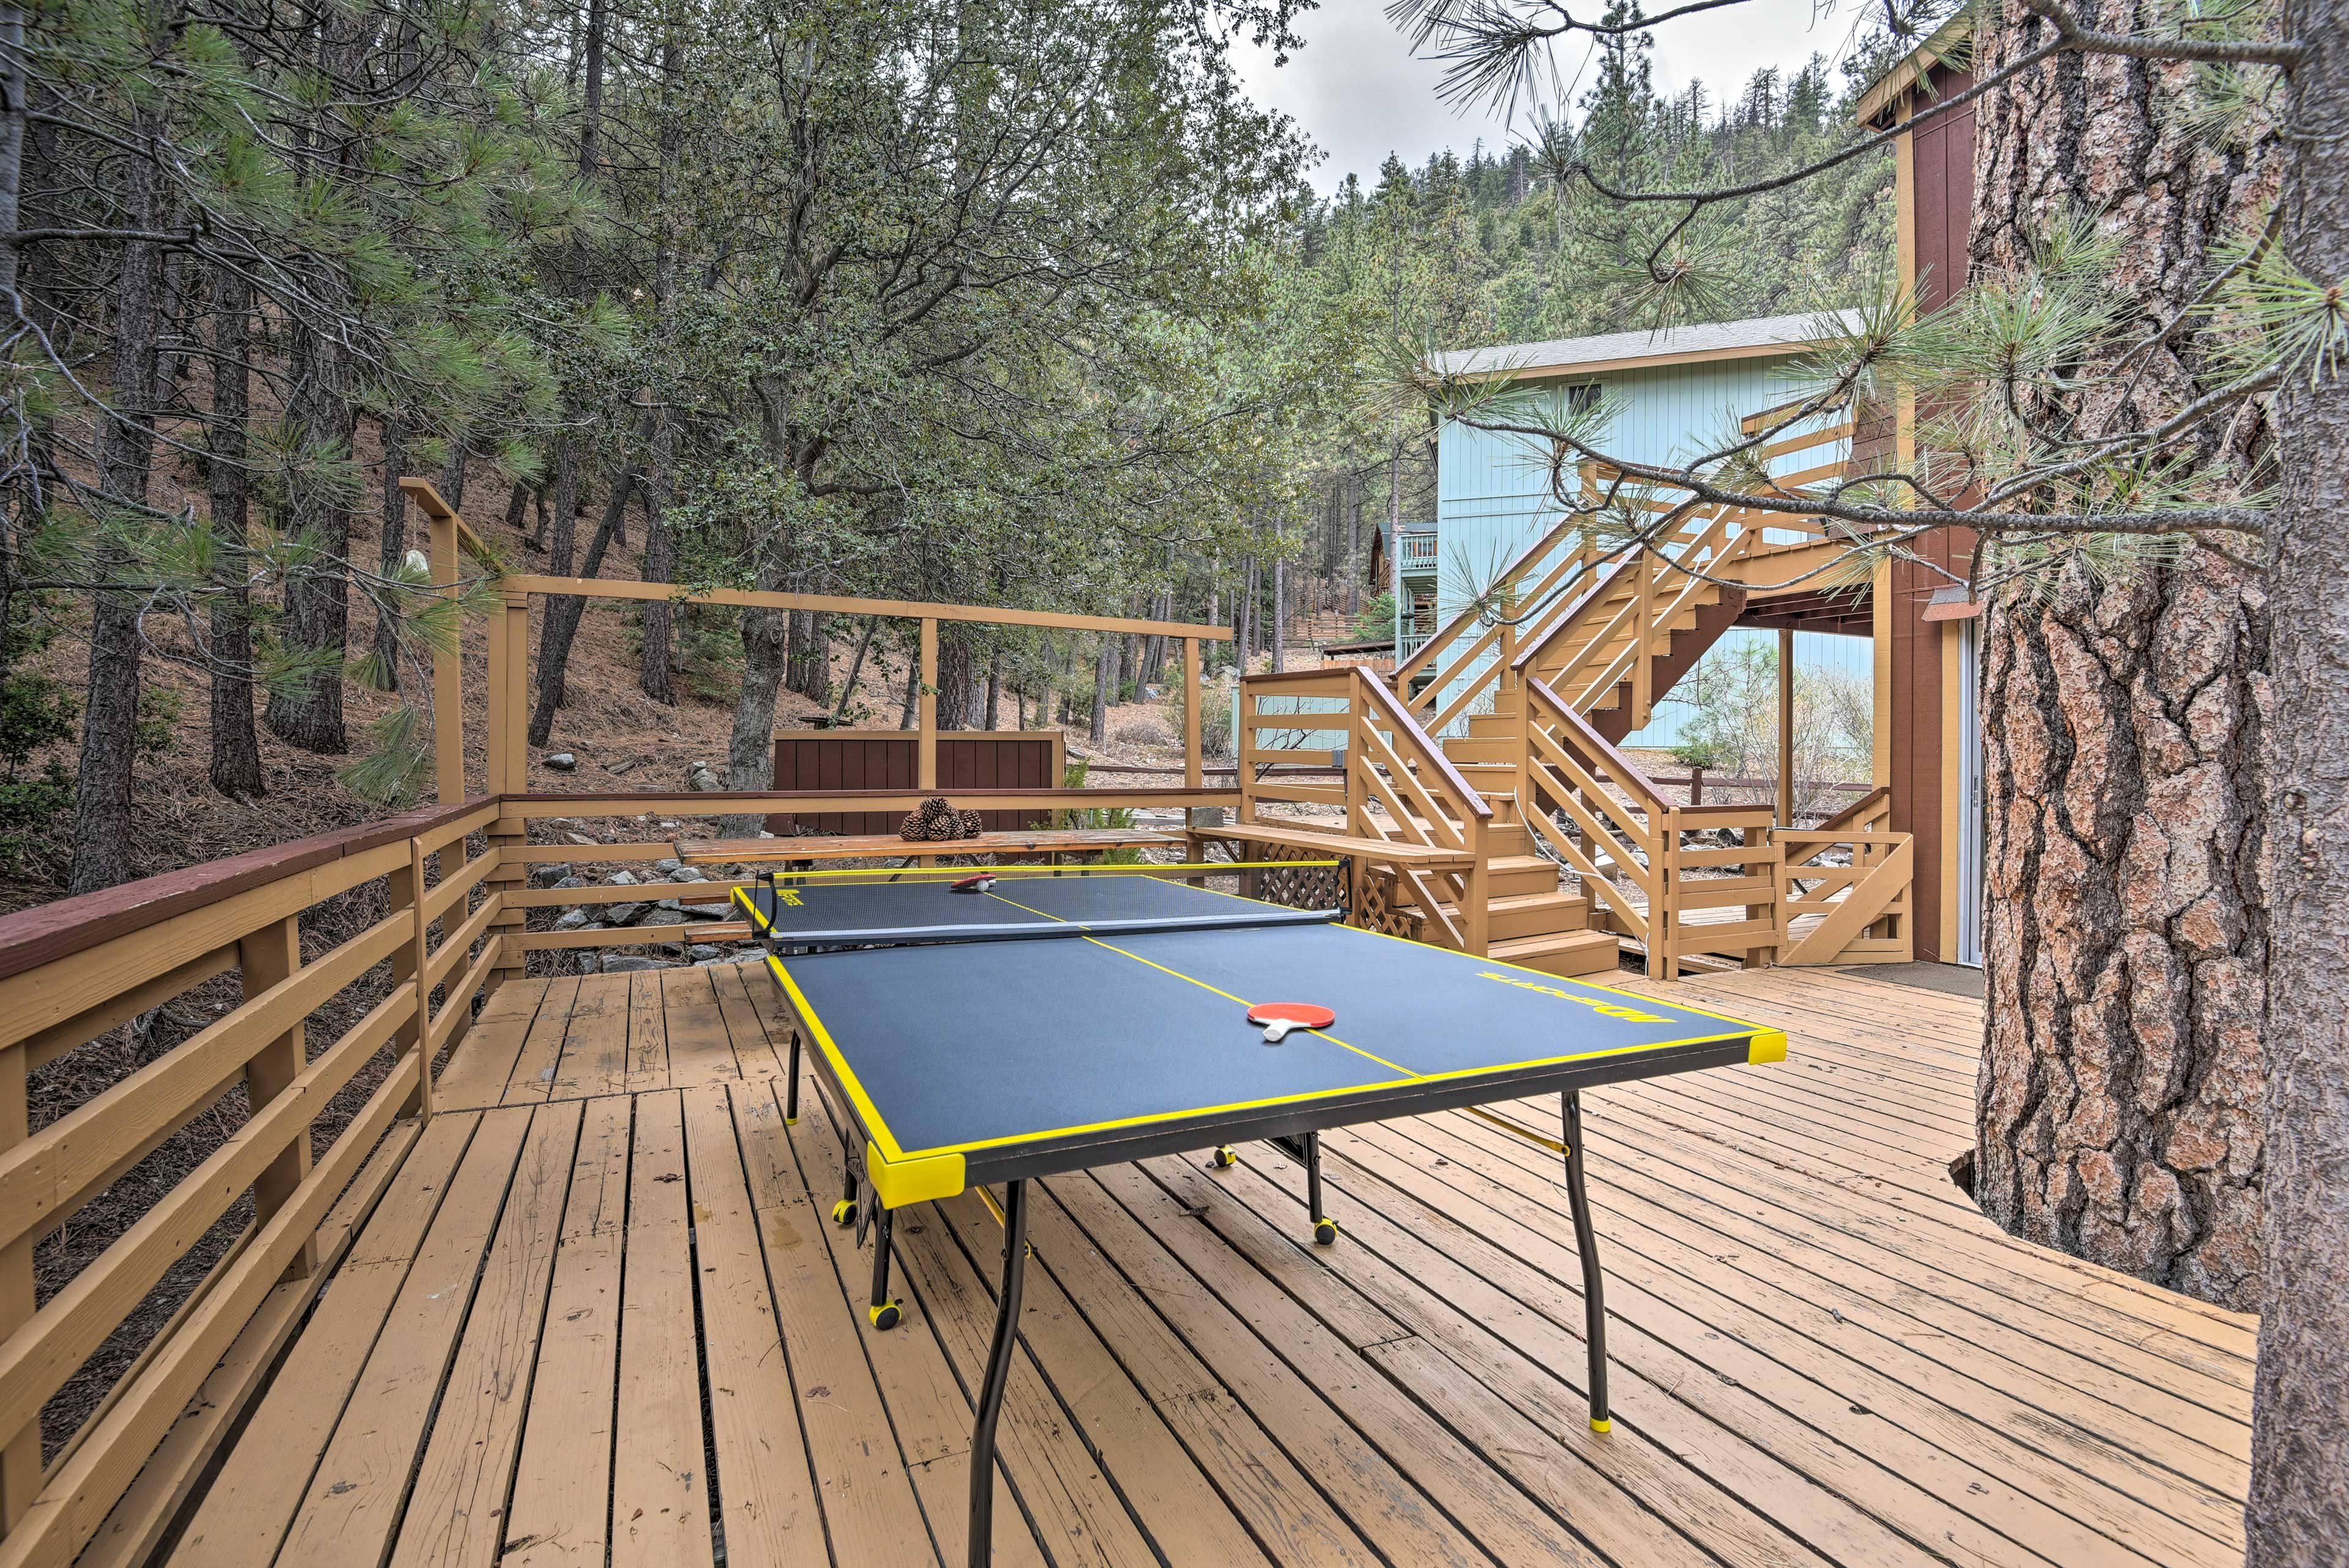 Play ping pong surrounded by towering trees.